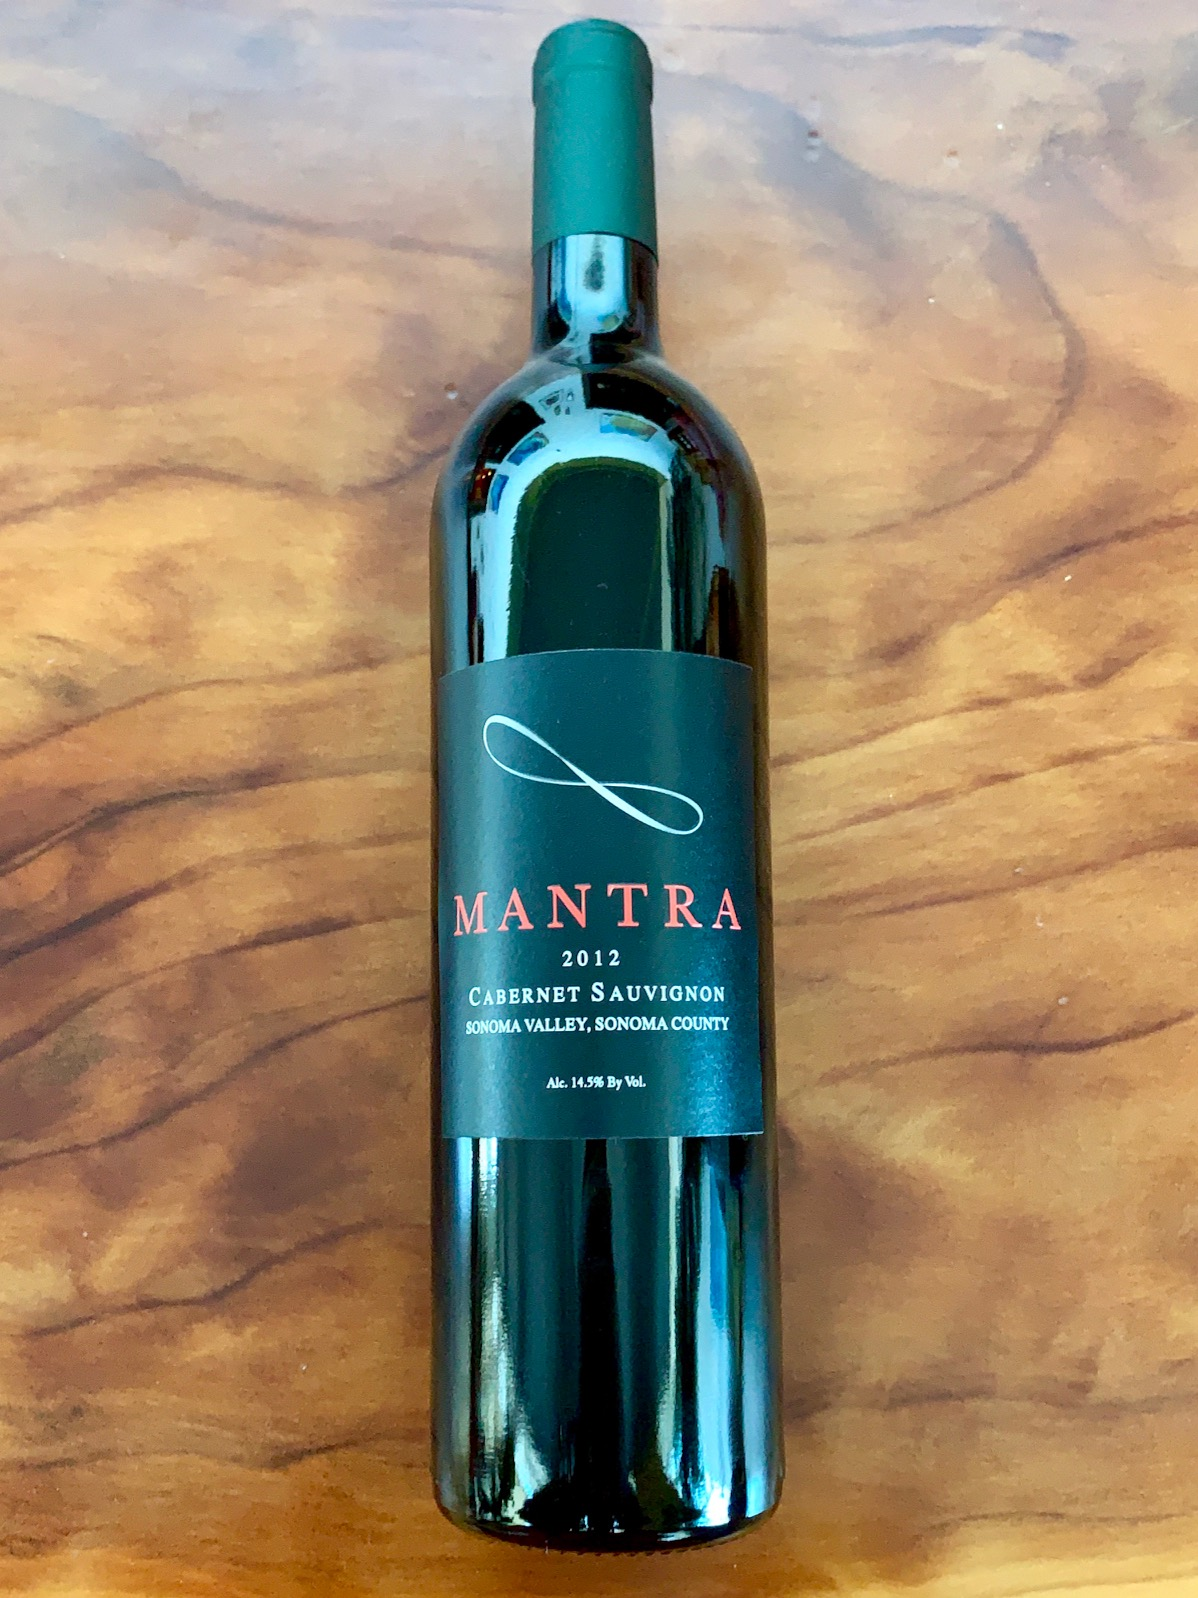 2012 Mantra Sonoma Valley Cabernet